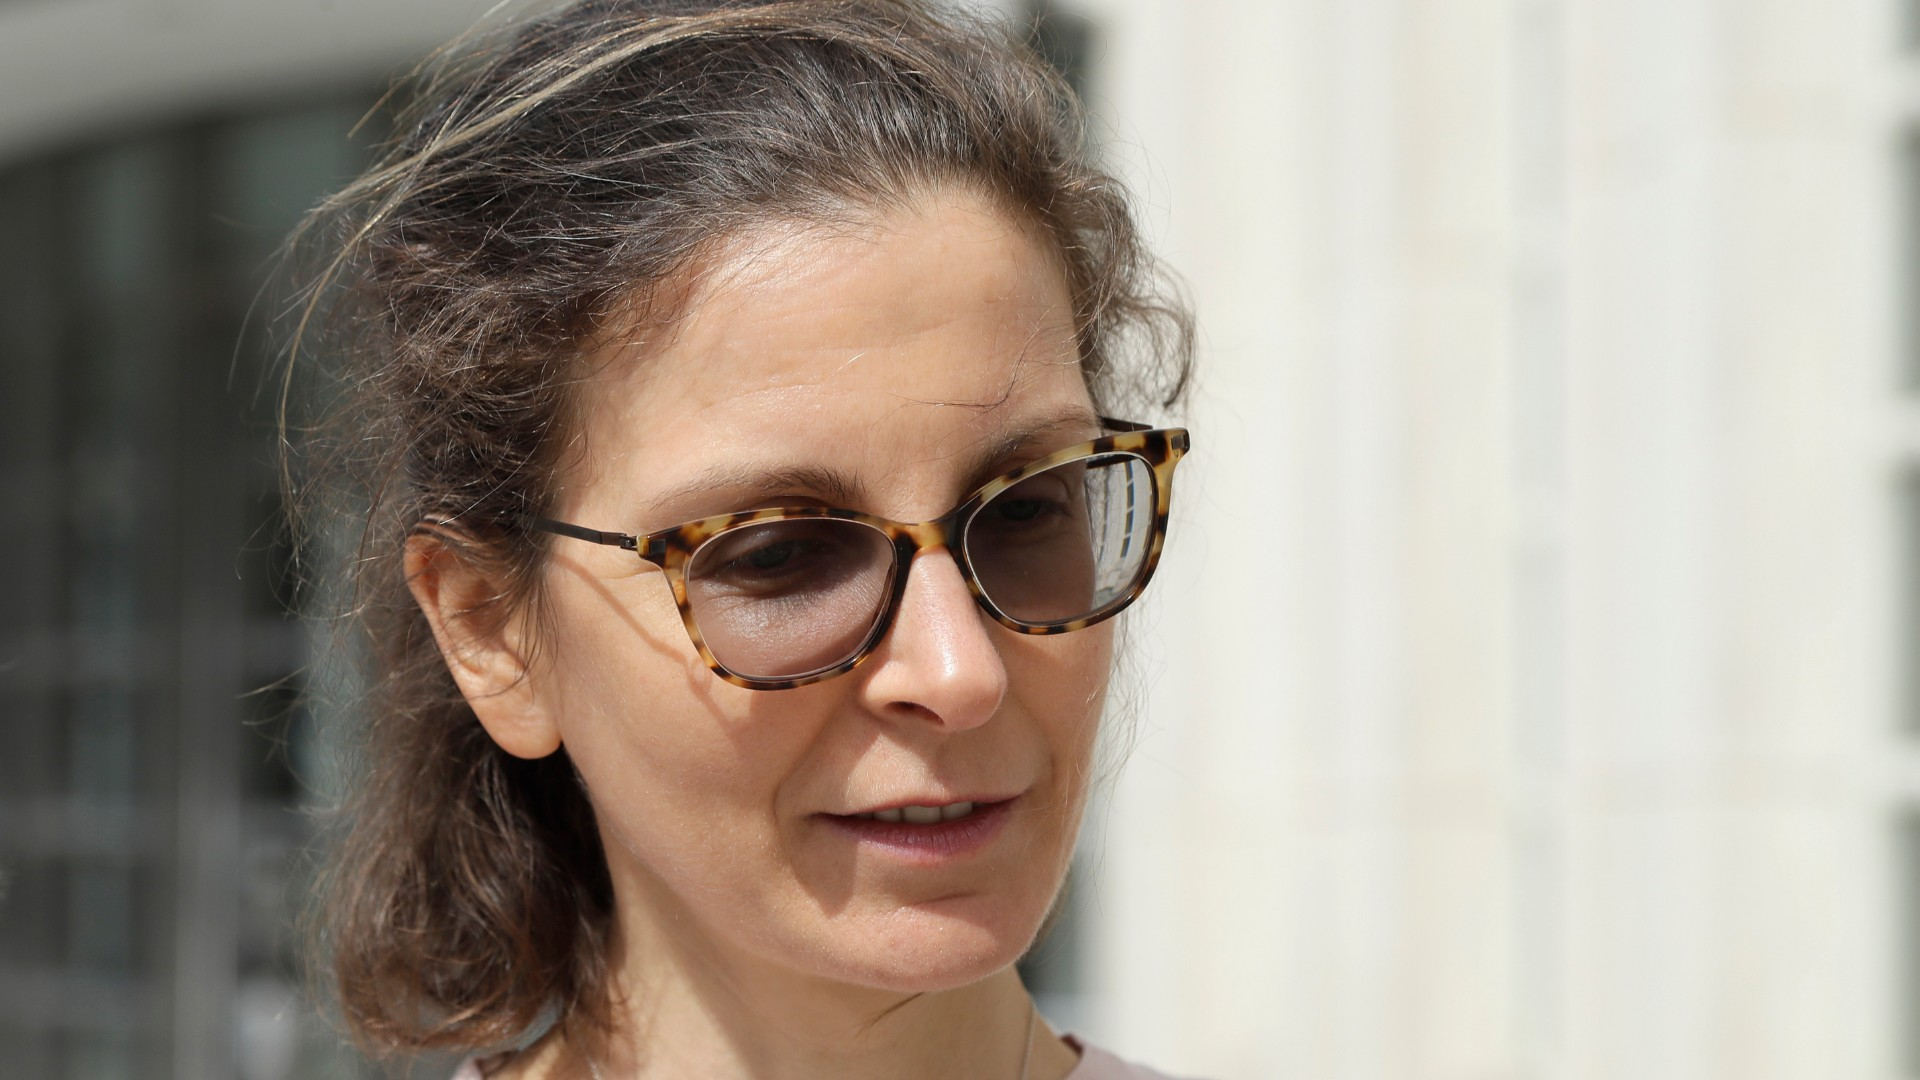 In this April 8, 2019, file photo, Seagram's liquor fortune heiress Clare Bronfman leaves Brooklyn Federal Court, in New York. Bronfman, the wealthy benefactor of Keith Raniere, the disgraced leader of a self-improvement group in upstate New York convicted of turning women into sex slaves branded with his initials, will be in court, on Wednesday, Sept. 30, 2020, for sentencing on federal conspiracy charges. (AP Photo/Mark Lennihan, File)